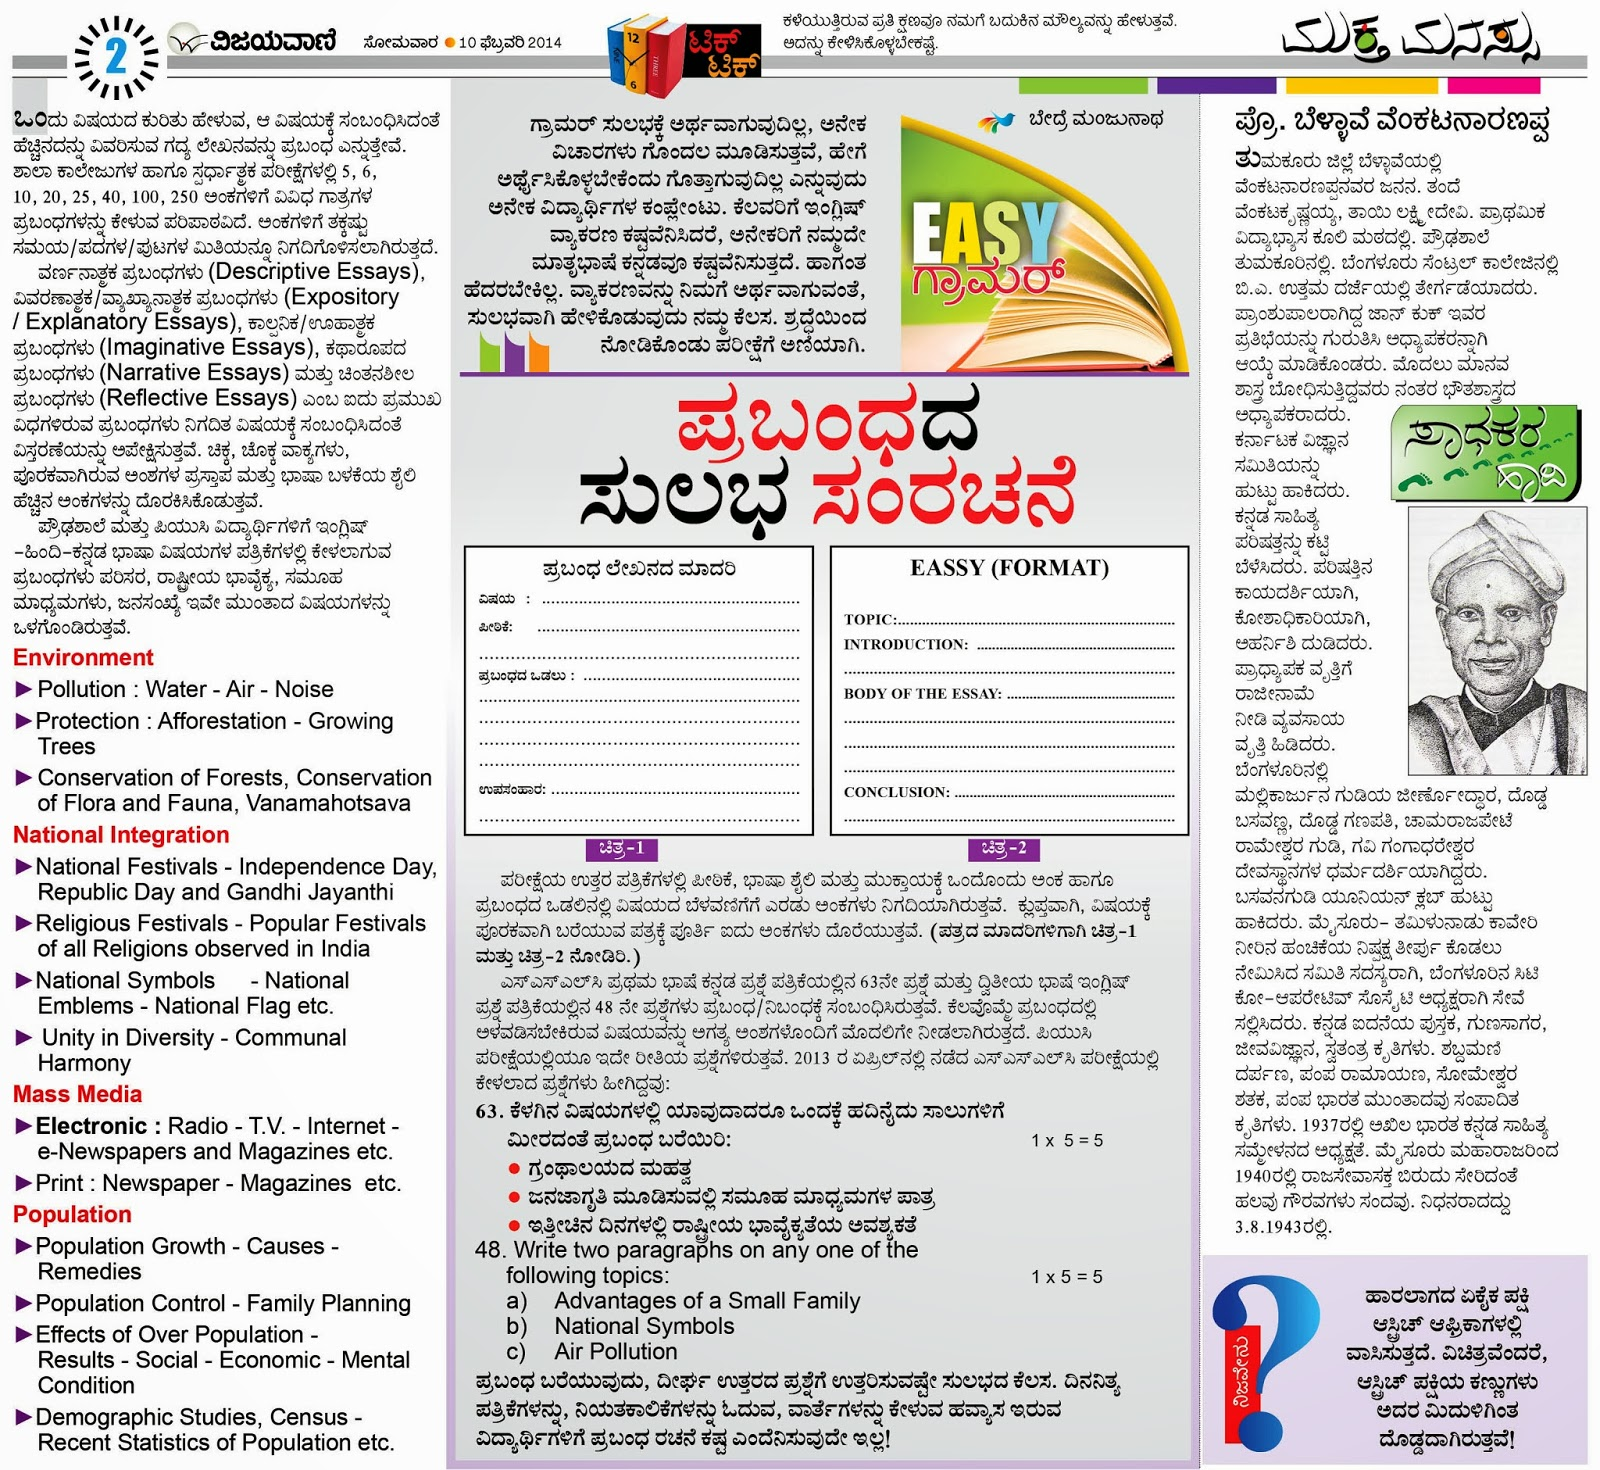 http://1.bp.blogspot.com/-nFU4y0H8ncs/UviRbFyqdwI/AAAAAAAAGuA/tJzhXQ0Pex0/s1600/Essay+Writing+for+SSLC+and+PUC+Students+-+Vijayavani+Student+Mitra+10+Feb+2014.jpg